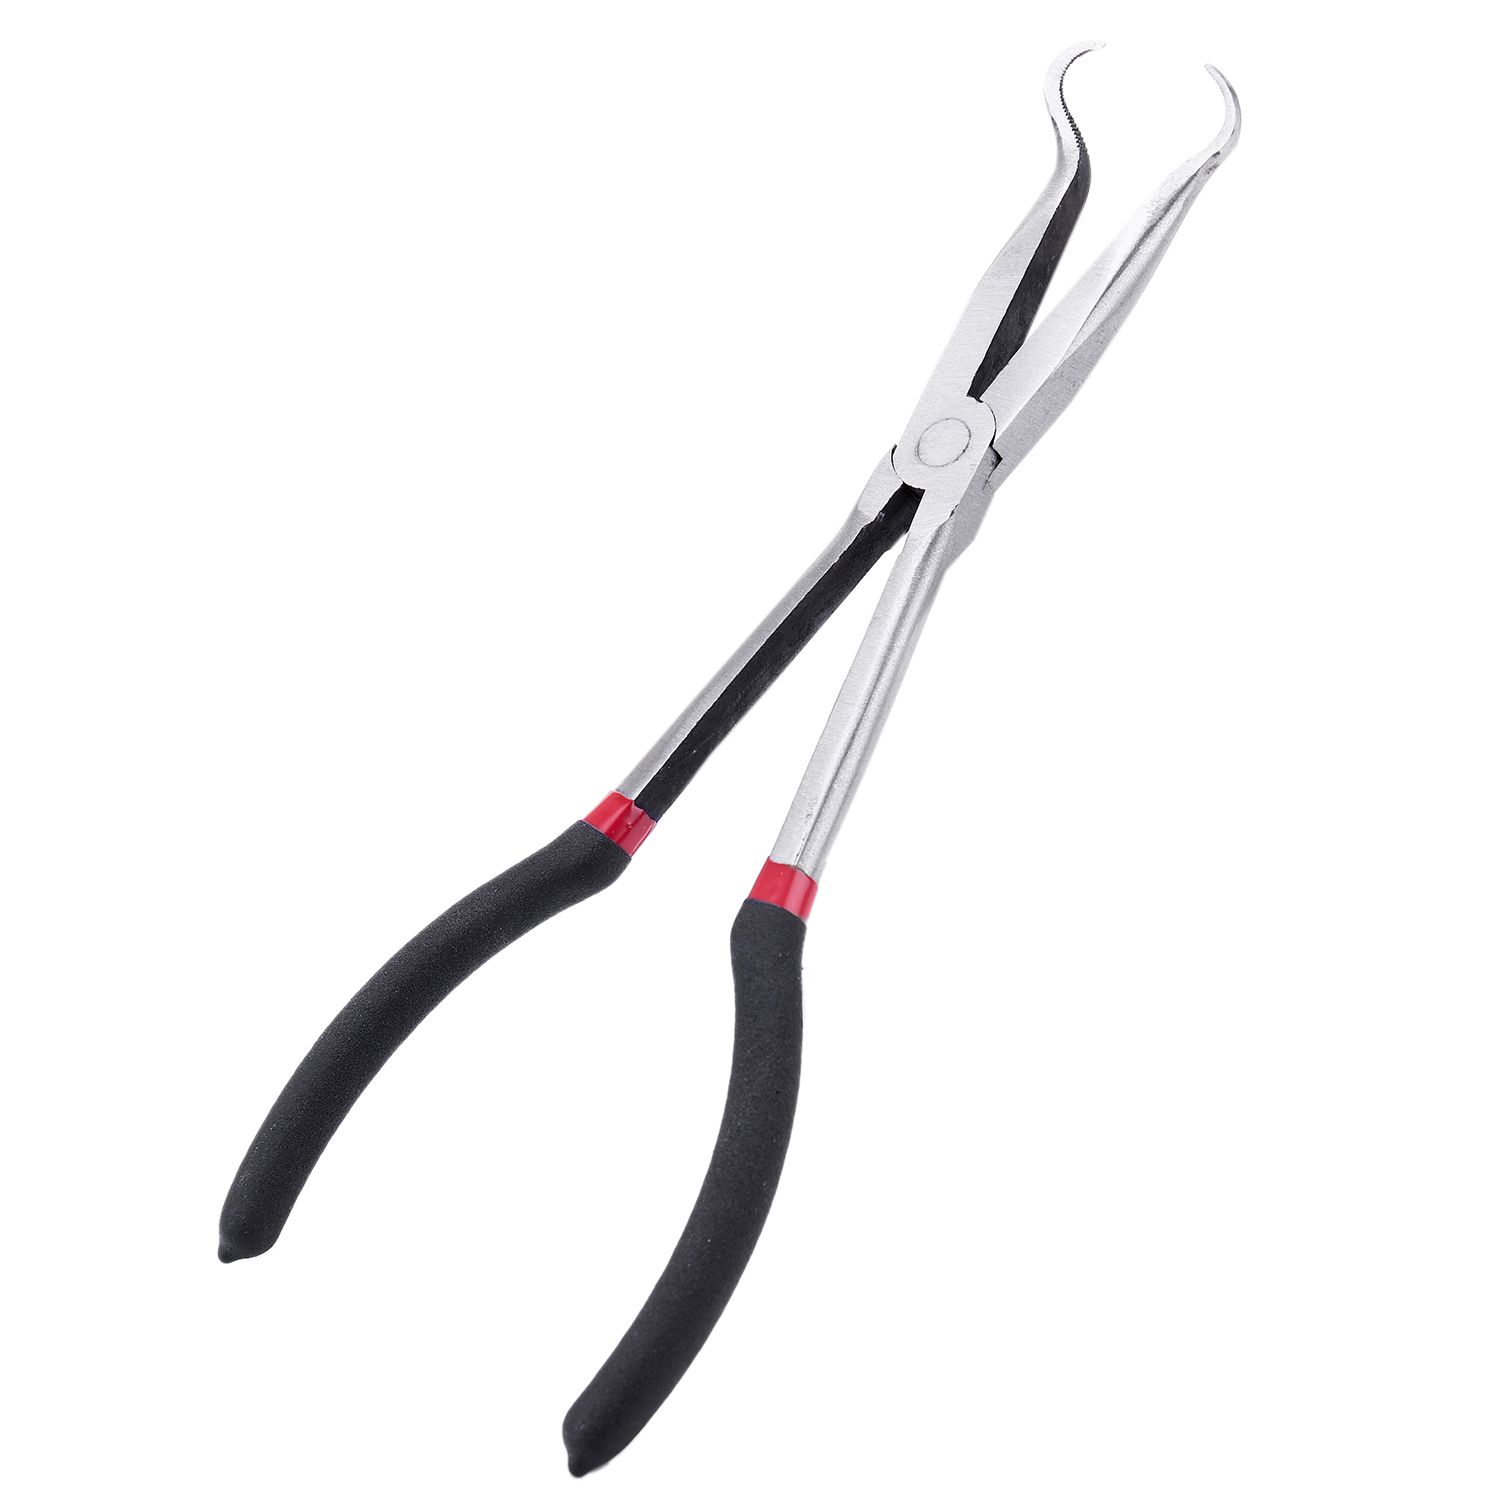 MYLB-High-quality 11-inch lengthened pliers needle nose pliers spark plug pliers type O c lin yan ling 4 digit display counter hhj1 h n standard ac220 page 5